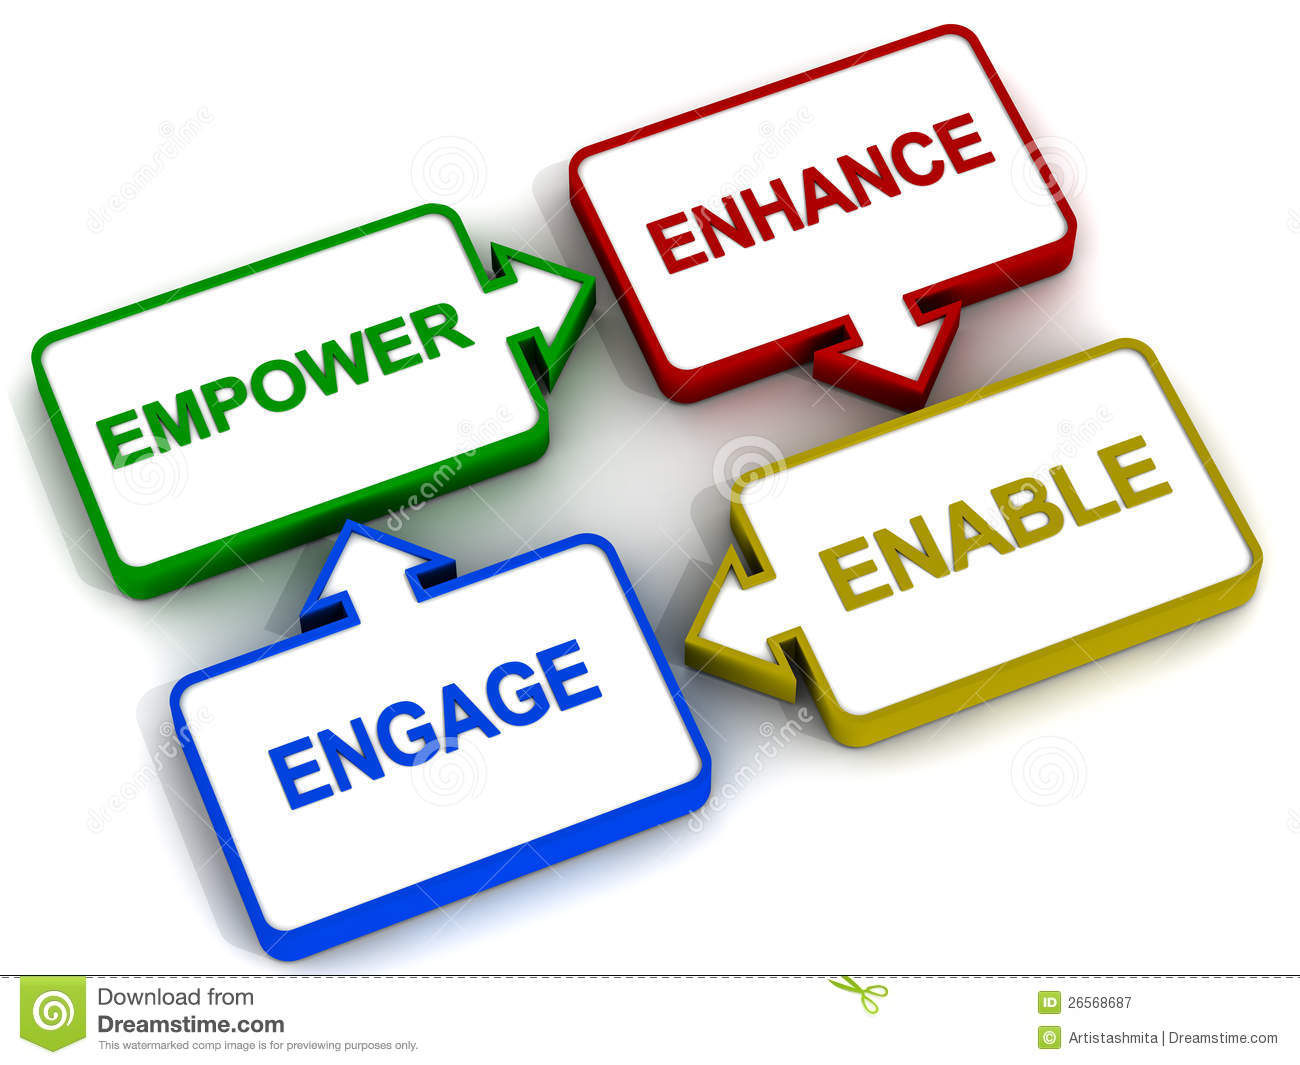 Improving Employee Empowerment Begins with Measurement